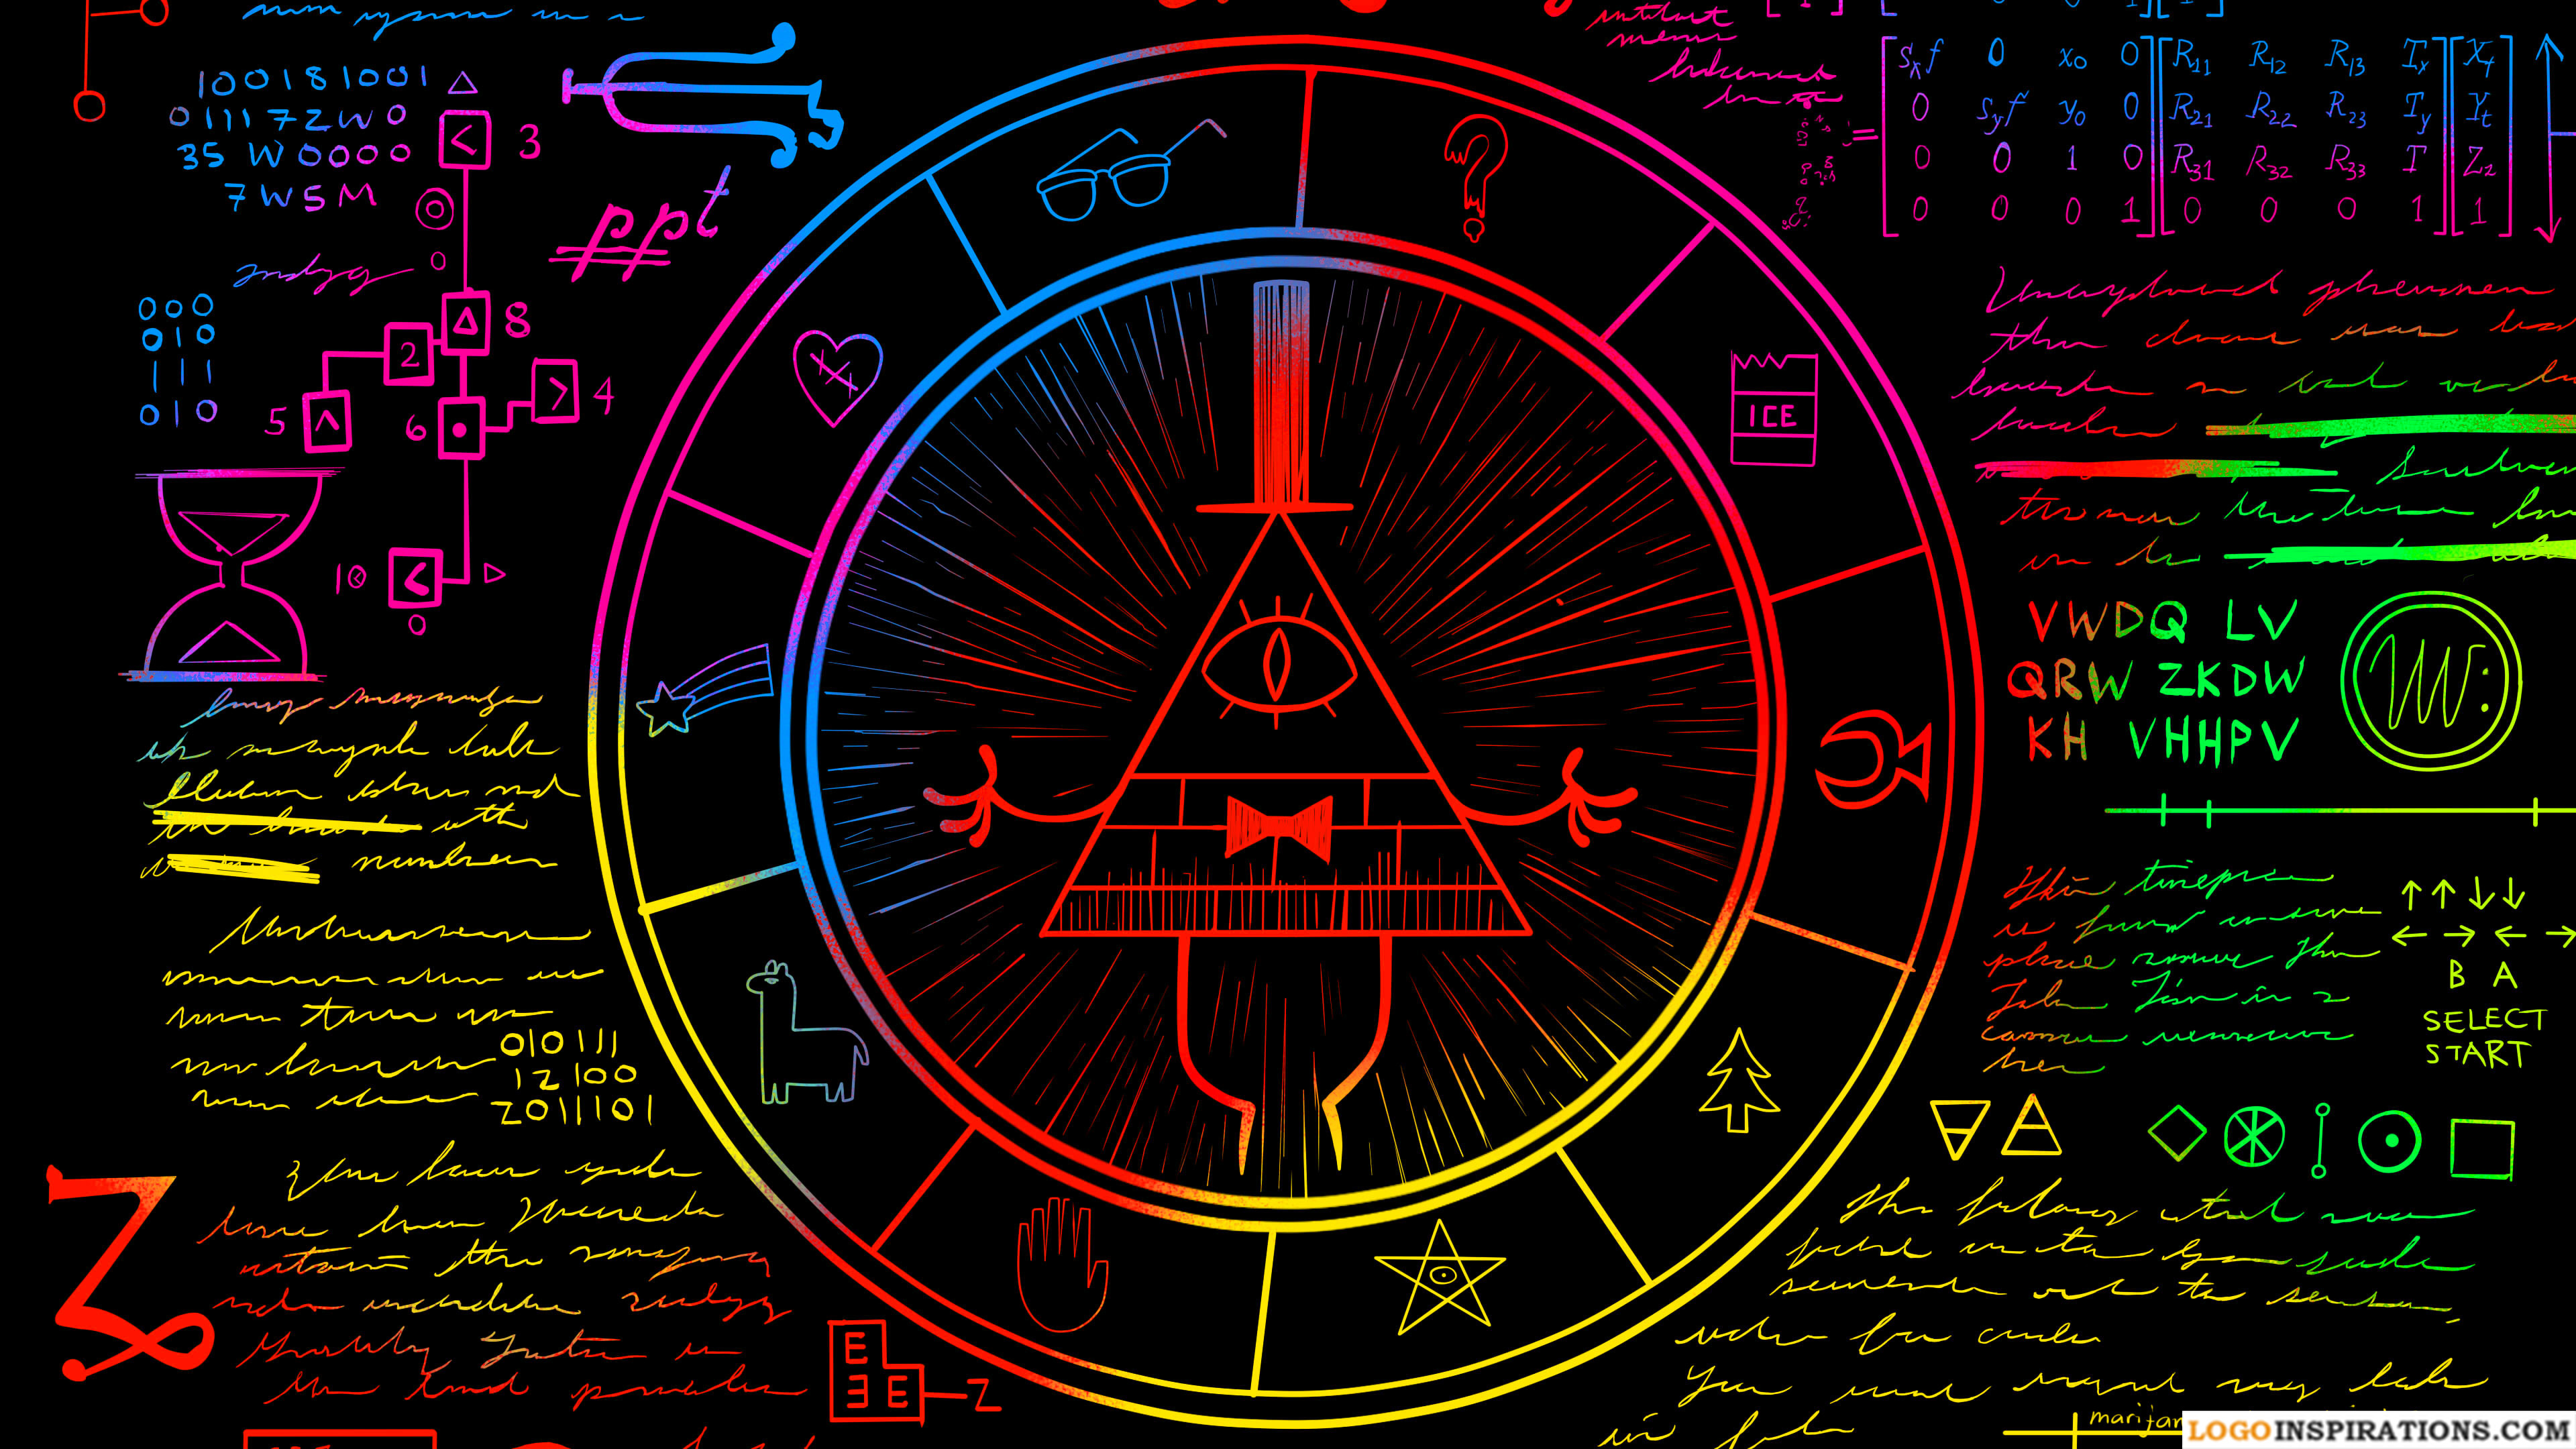 Wallpaper Gravity Falls Iphone Bill Cipher Wallpaper Tumblr 9 Page 3 Of 3 Dzbc Org